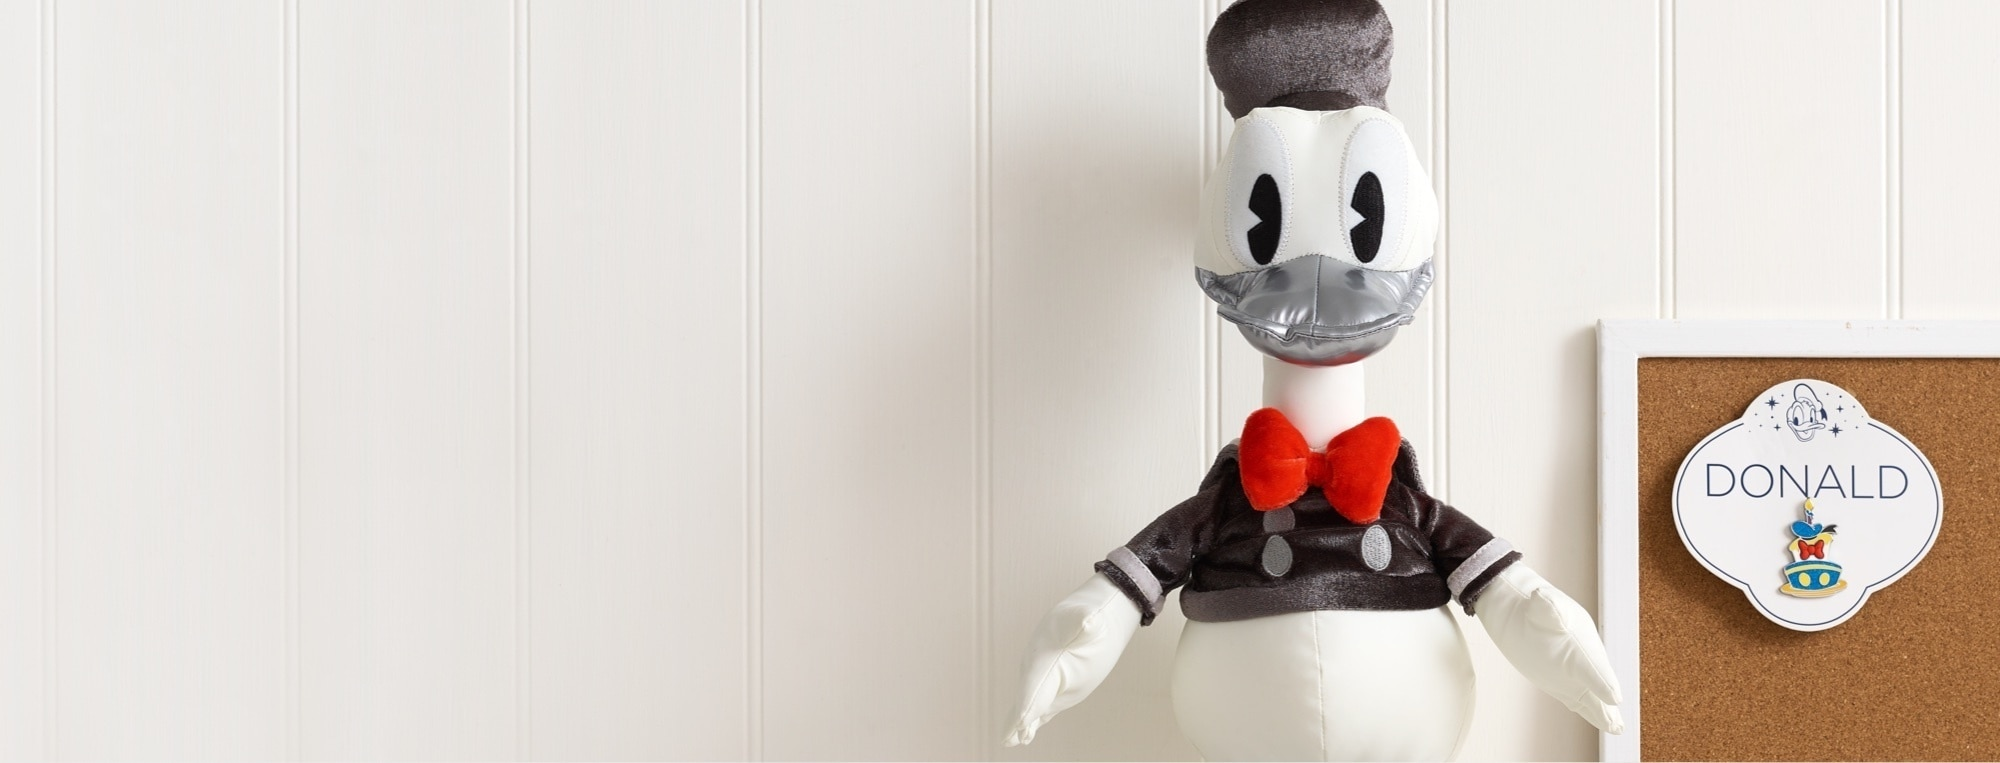 Find out more about the Donald Duck 85th Anniversary Collection